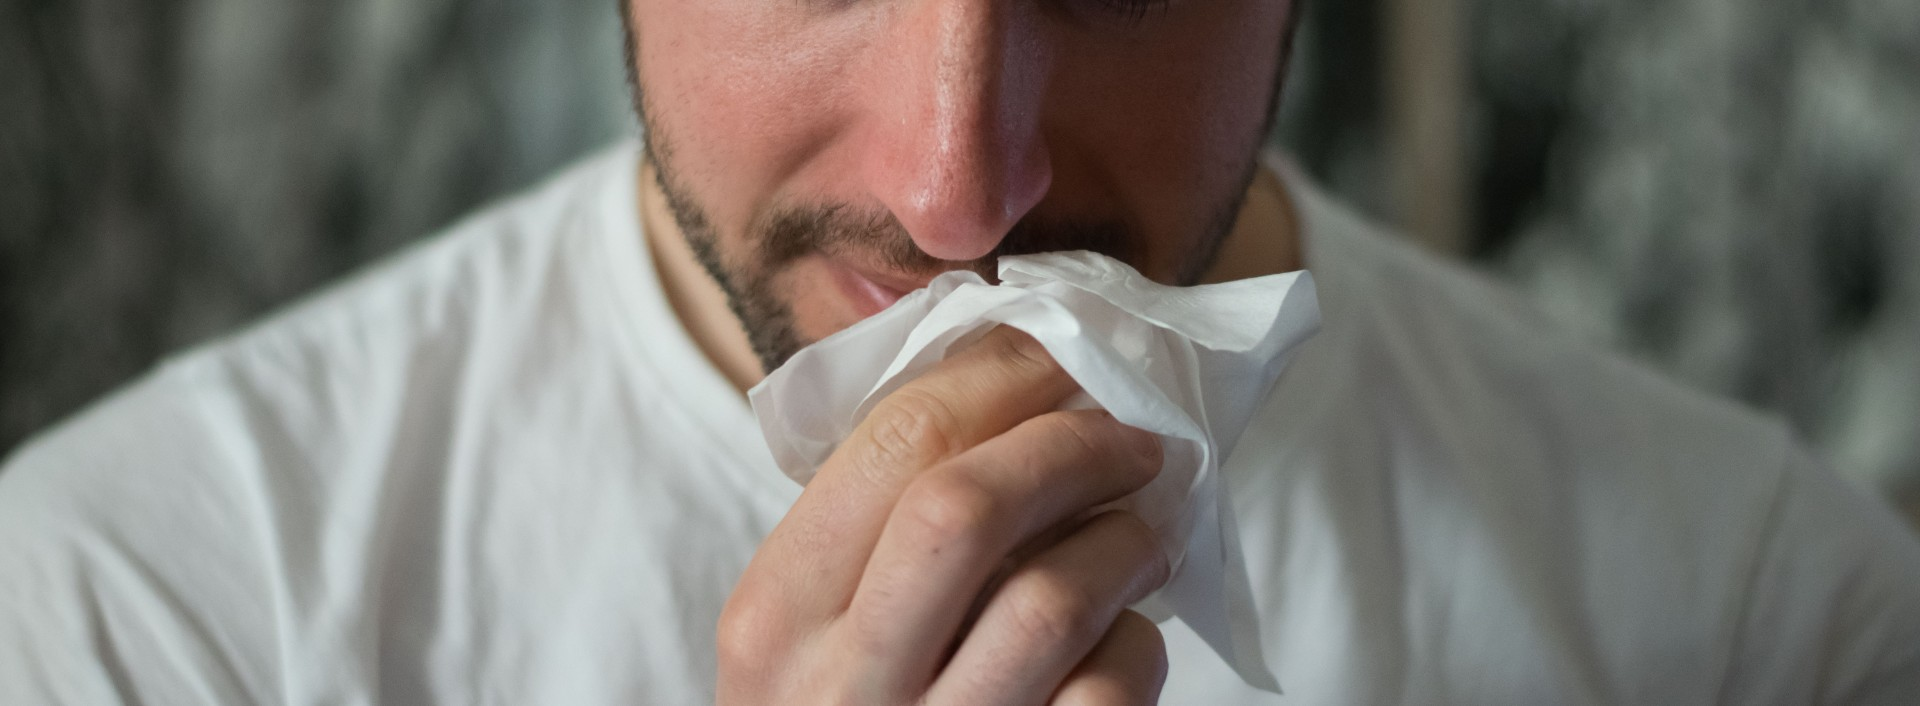 A man is rubbing his runny nose with a tissue, health English phrases